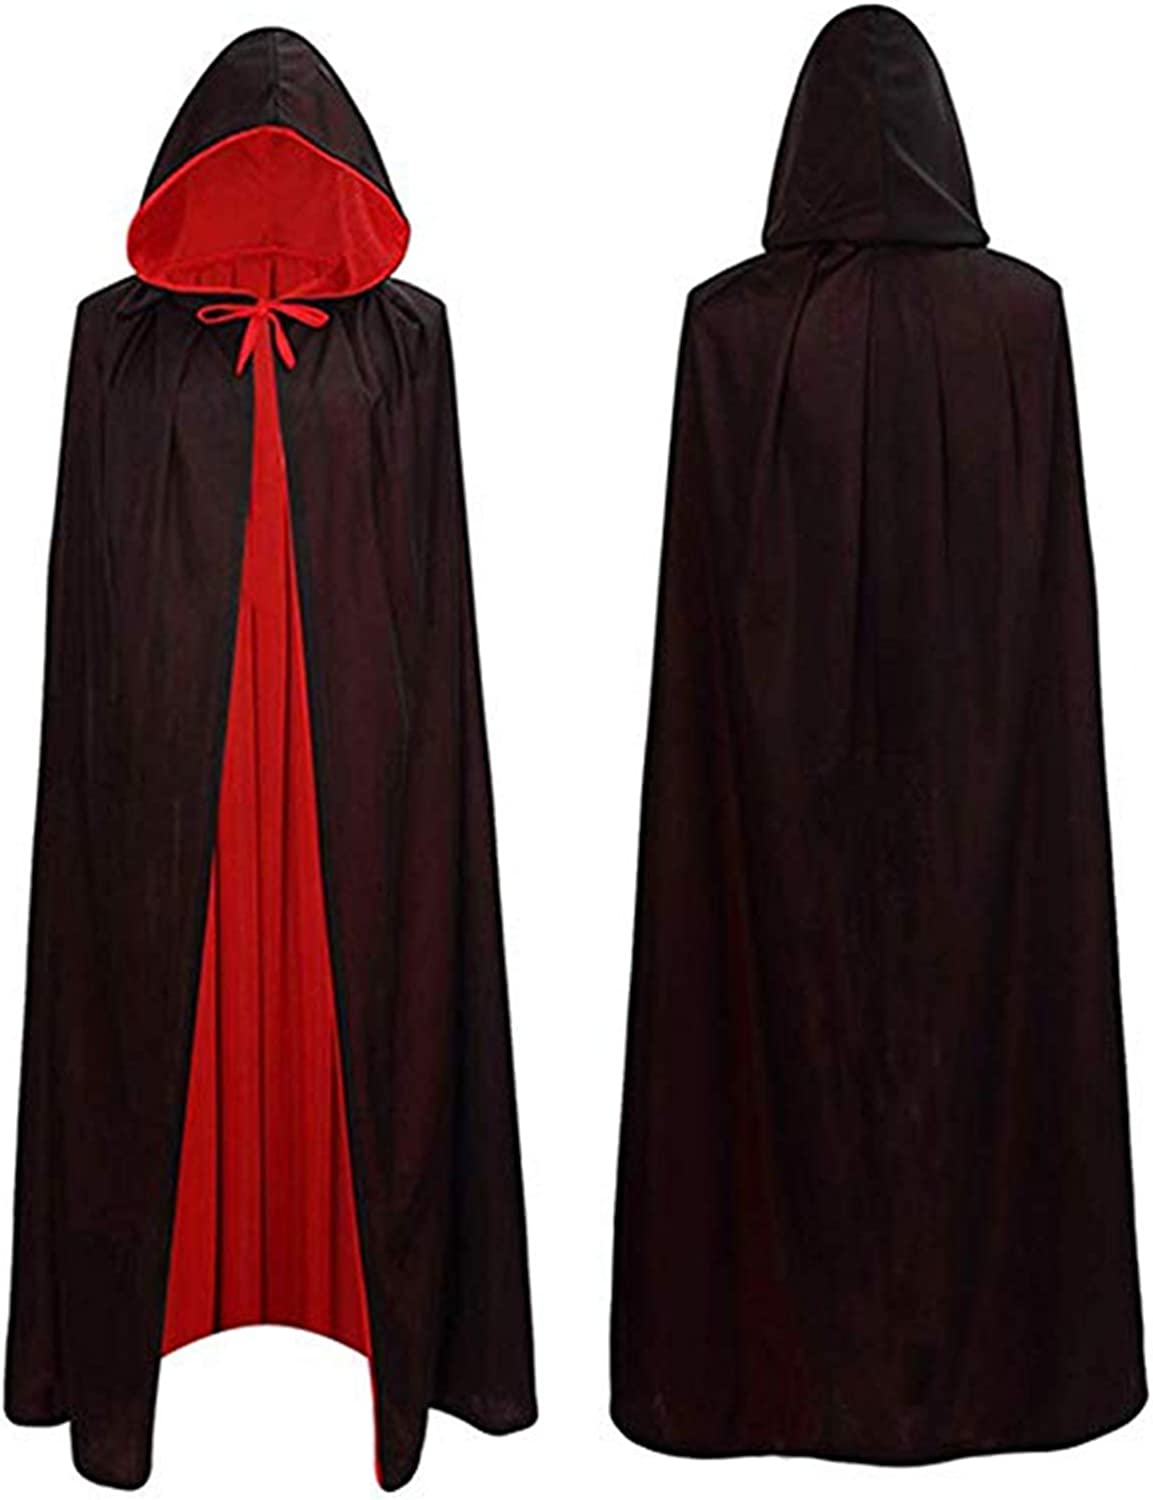 Lulu Home Halloween Cloak, Reversible Hooded Vampire Cape Halloween Costume for Man and Woman Black-red